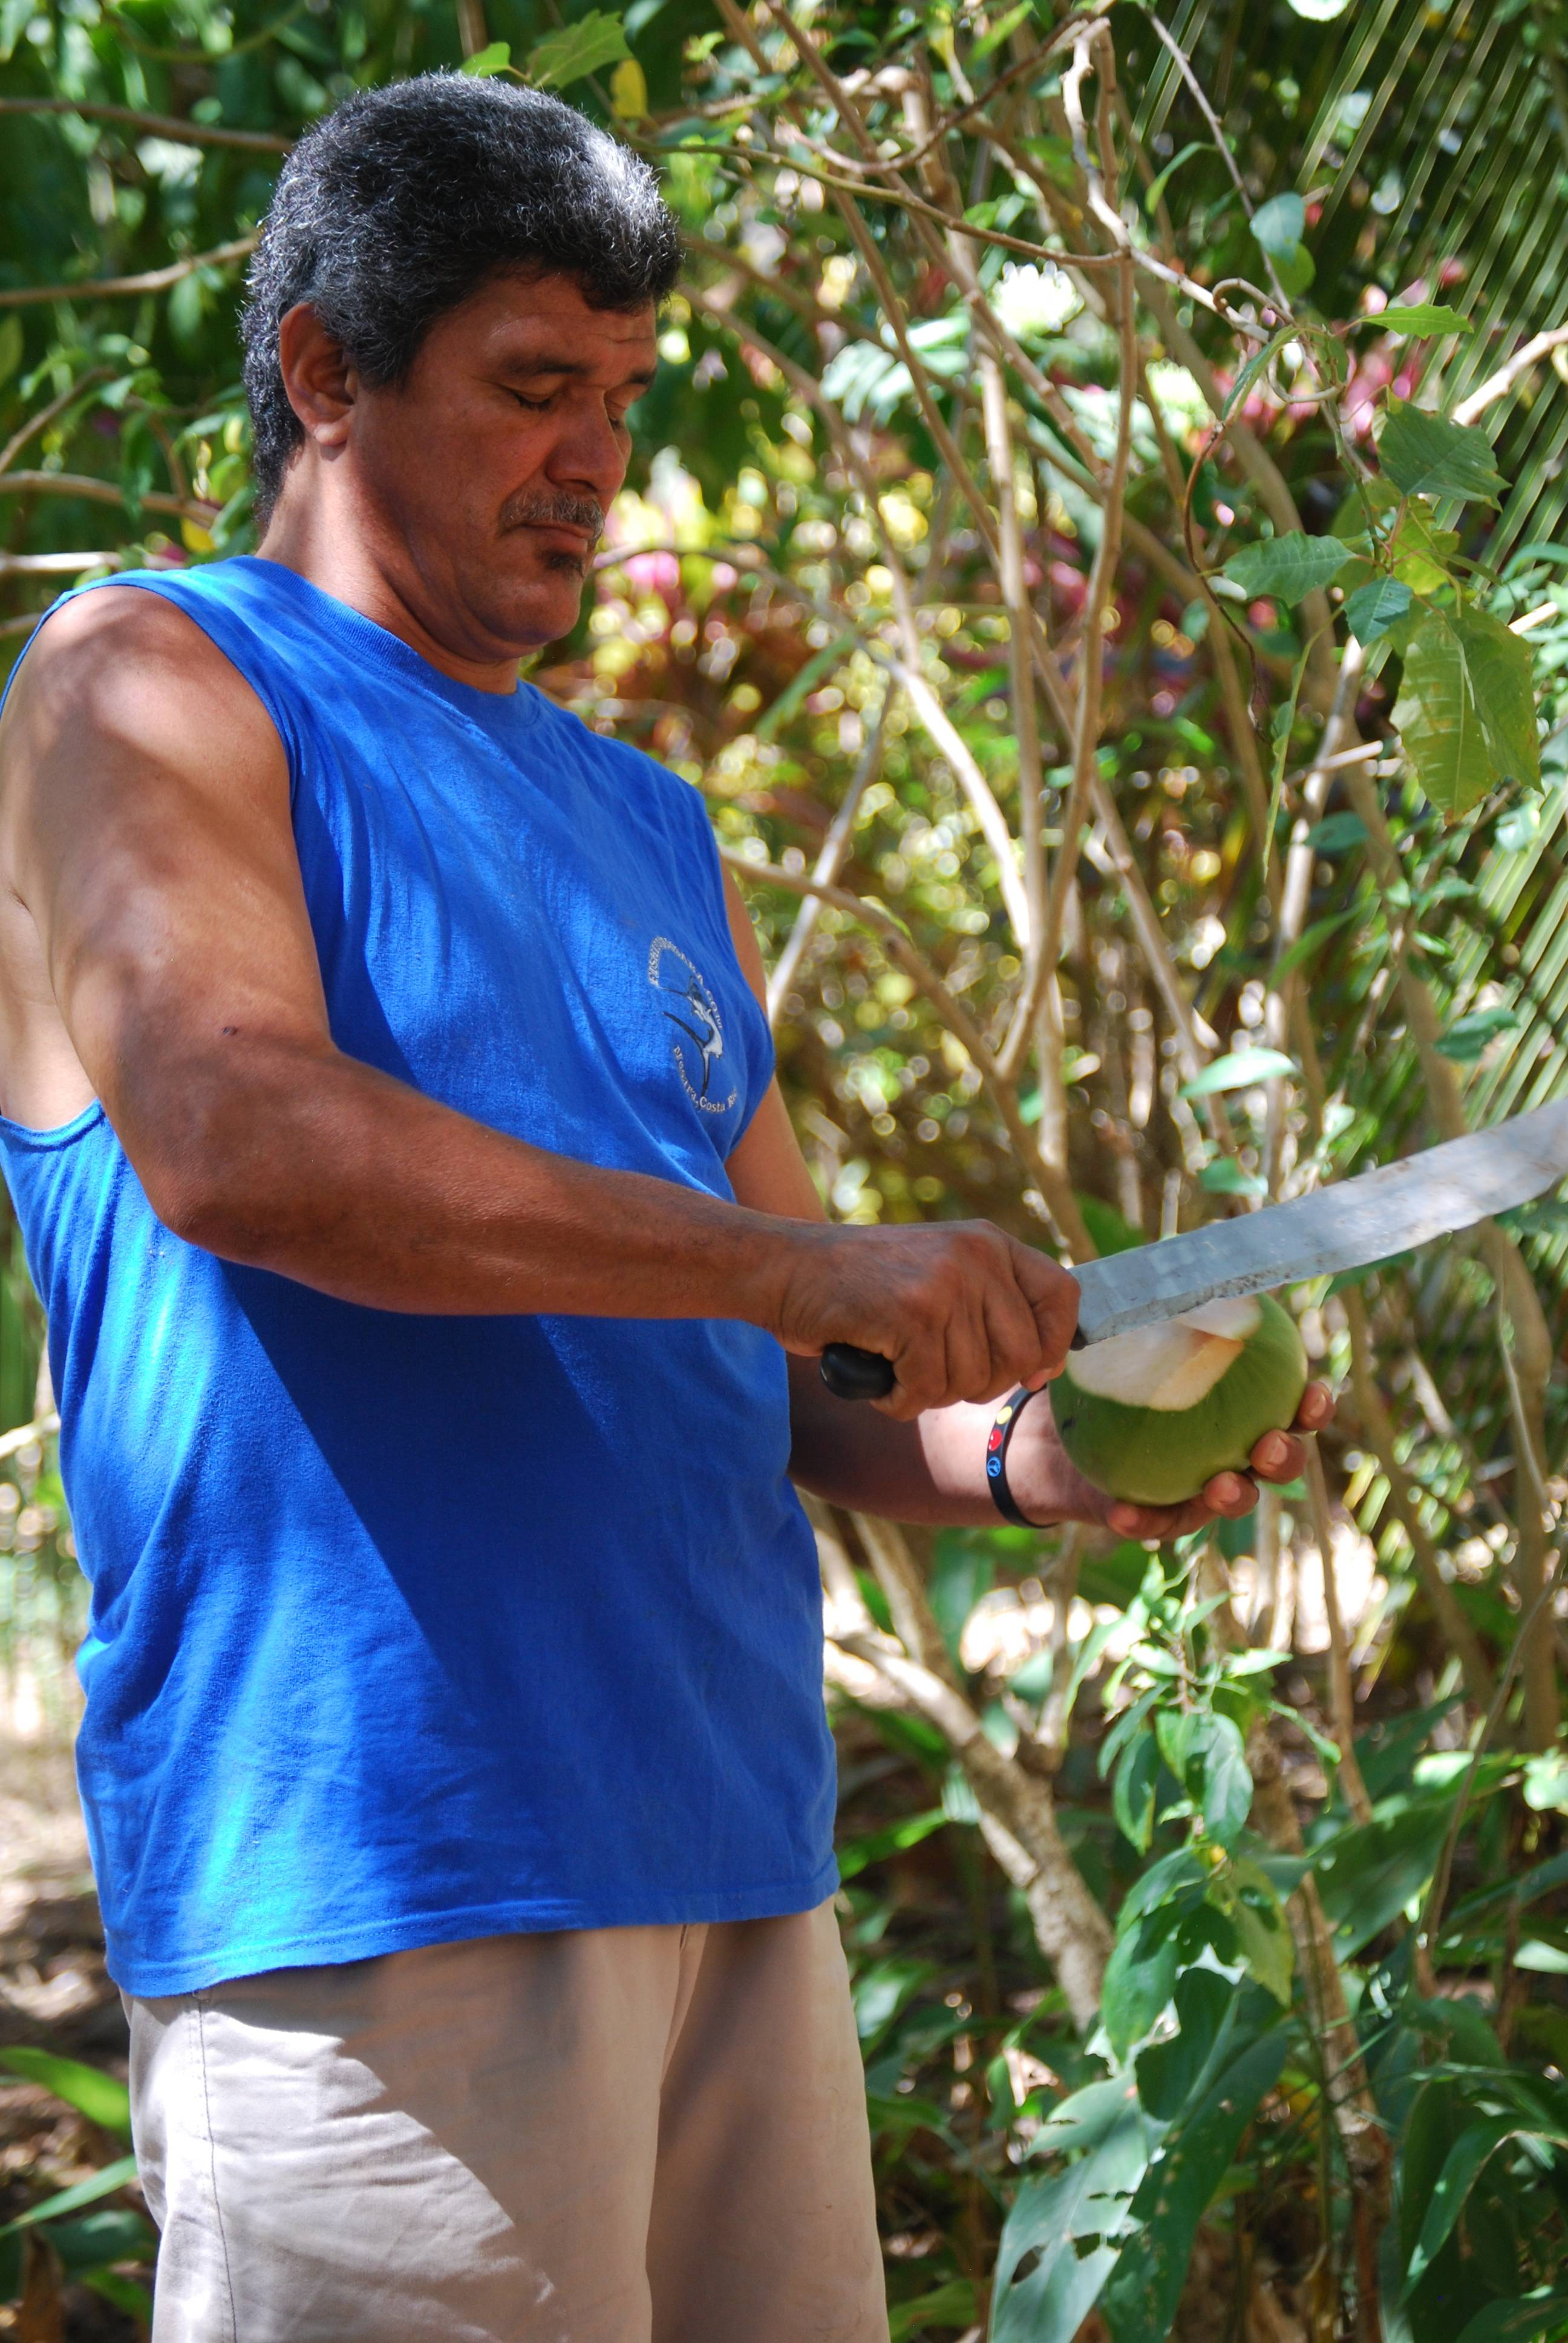 Tour guide Eduardo Hernandez chops the top off a green coconut, which he then gives to his guests to drink from.